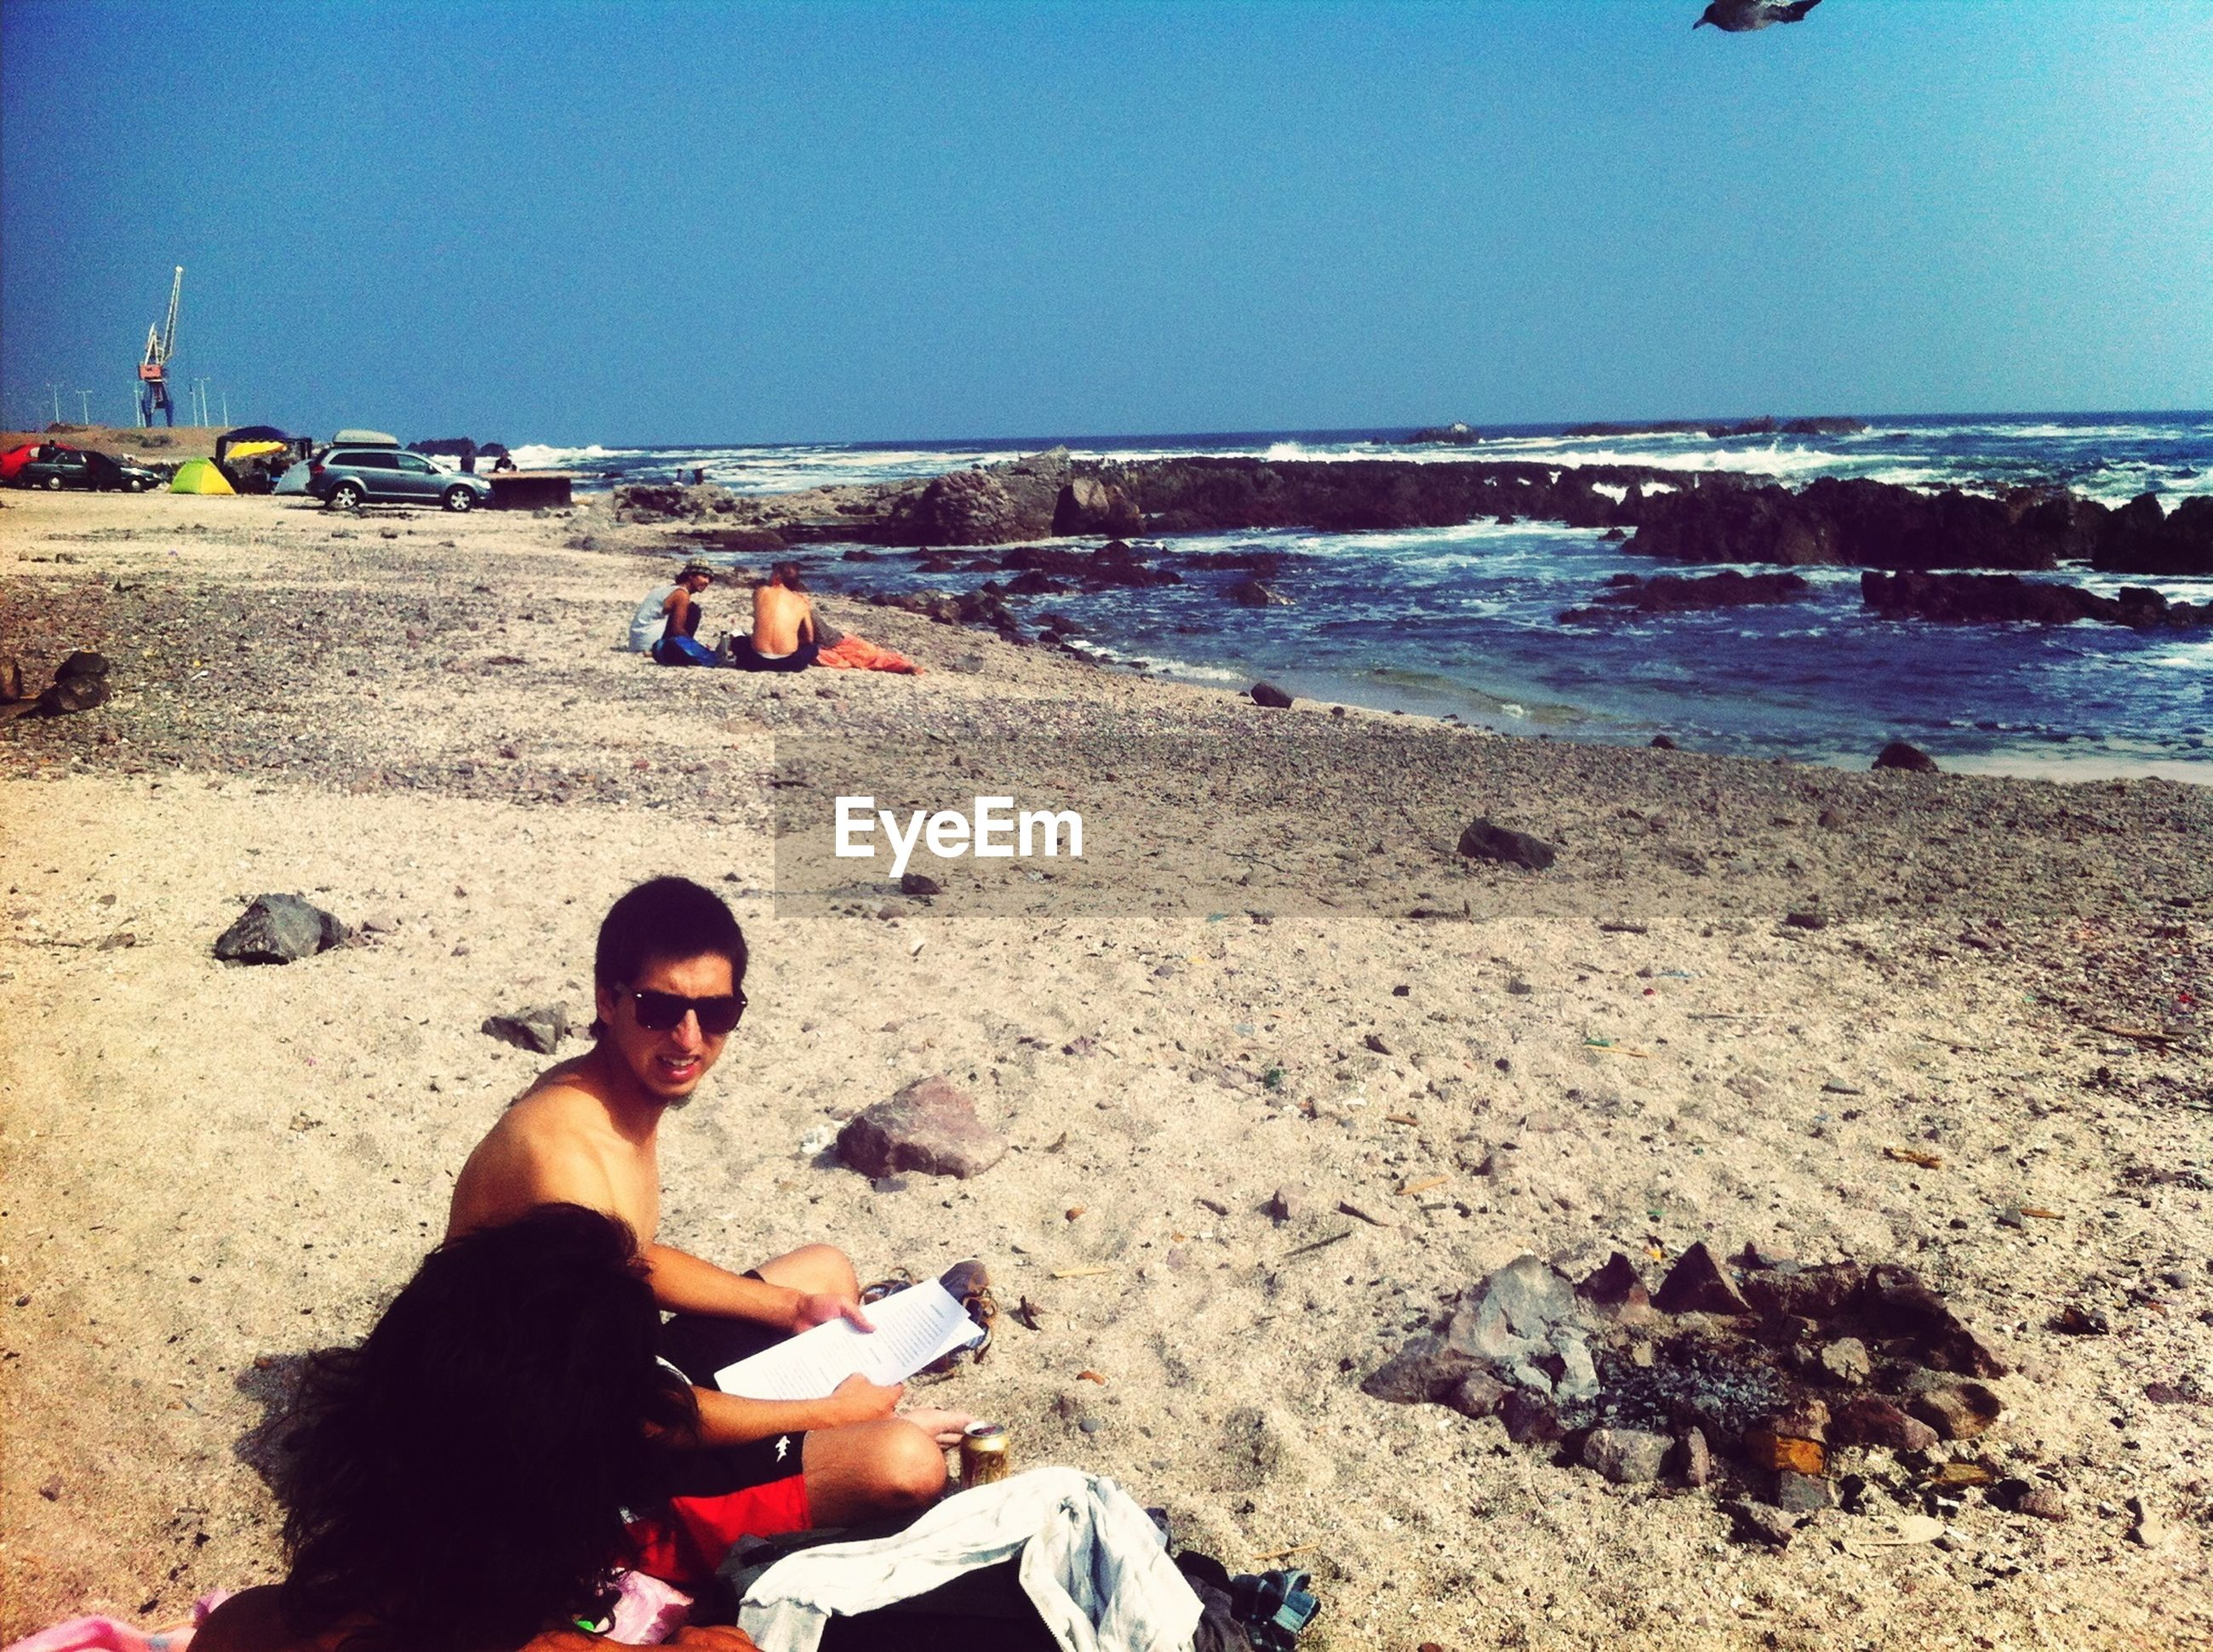 beach, sea, sand, shore, clear sky, leisure activity, lifestyles, water, horizon over water, copy space, sky, sunlight, rear view, men, vacations, casual clothing, sitting, incidental people